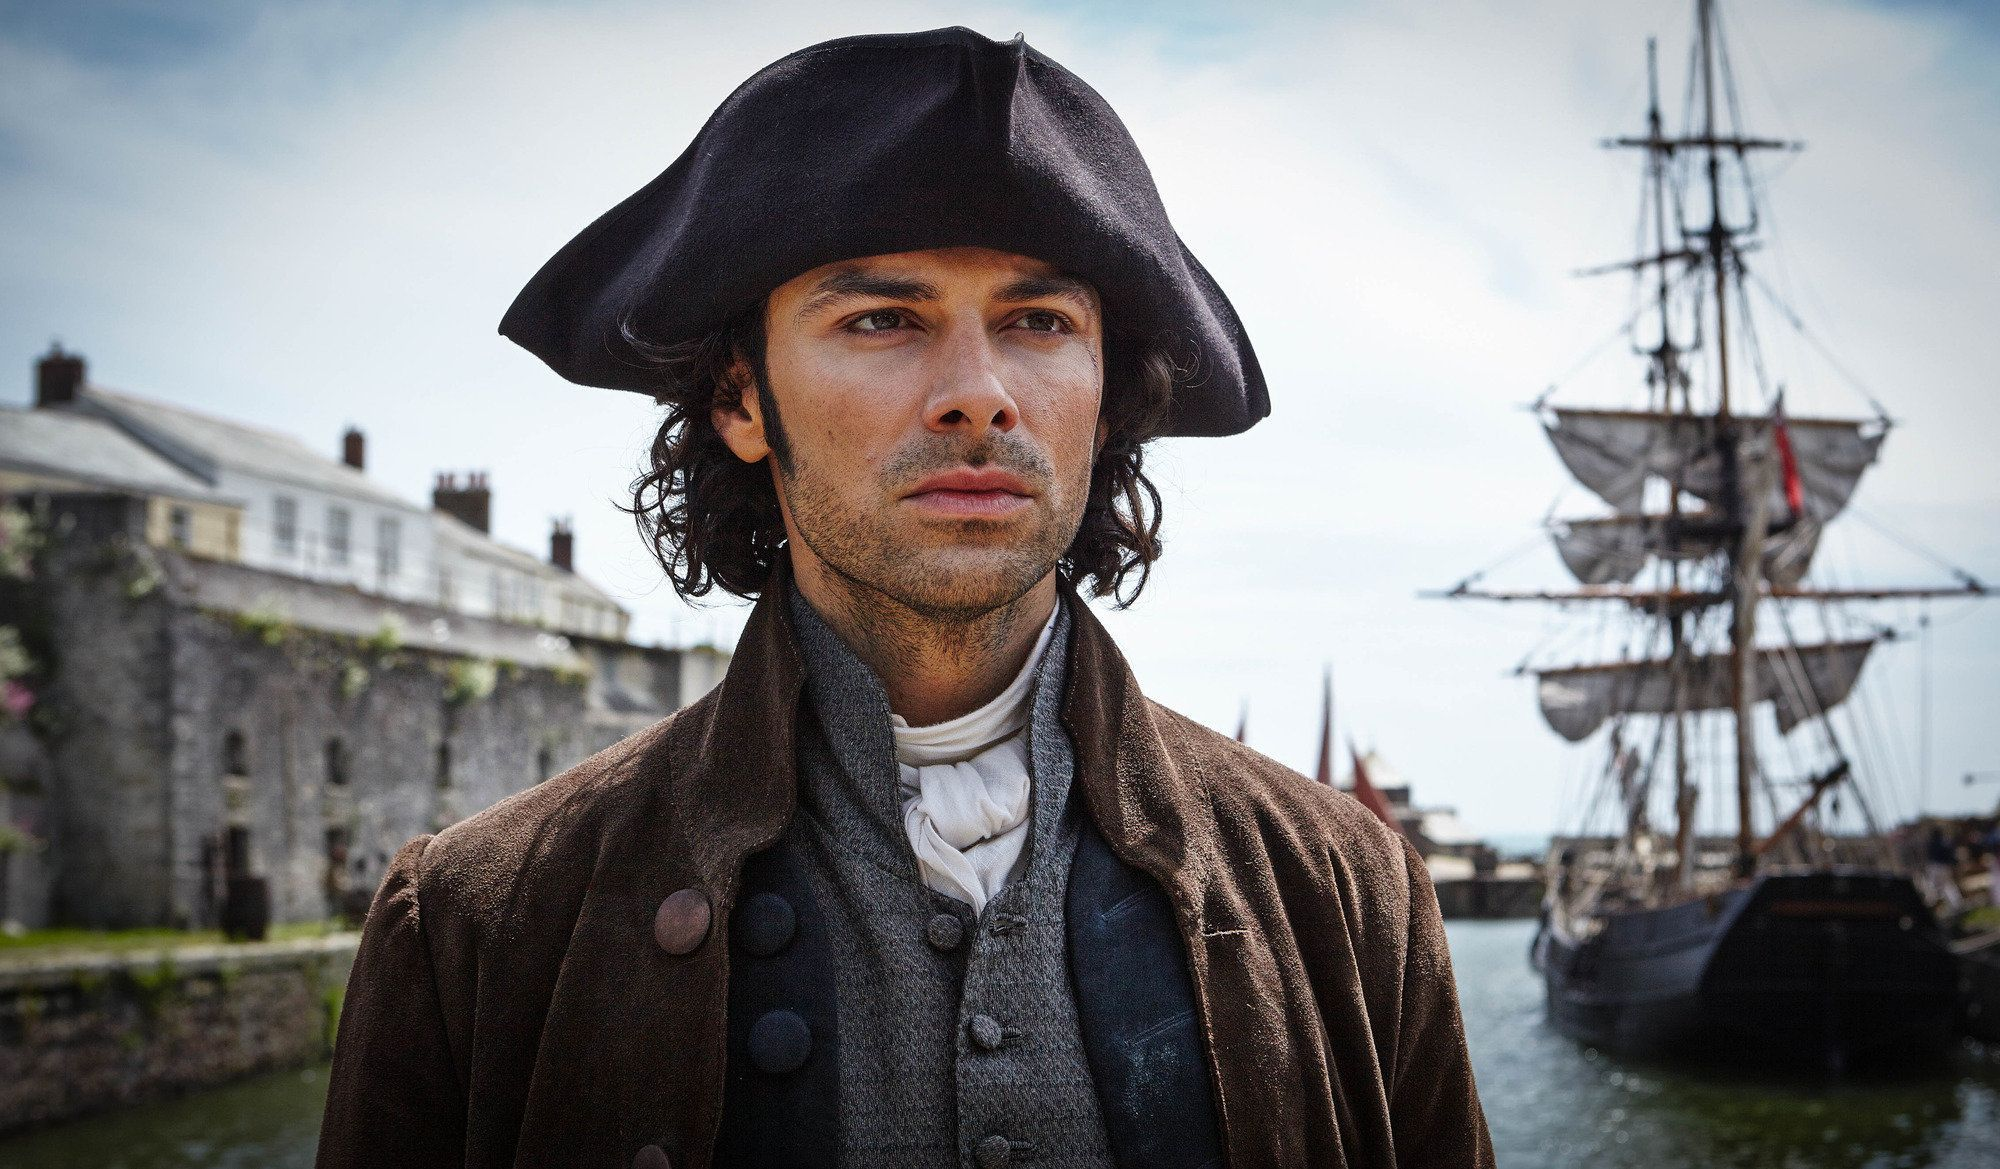 Ofcom Makes Ruling On Controversial 'Poldark' Rape Scene